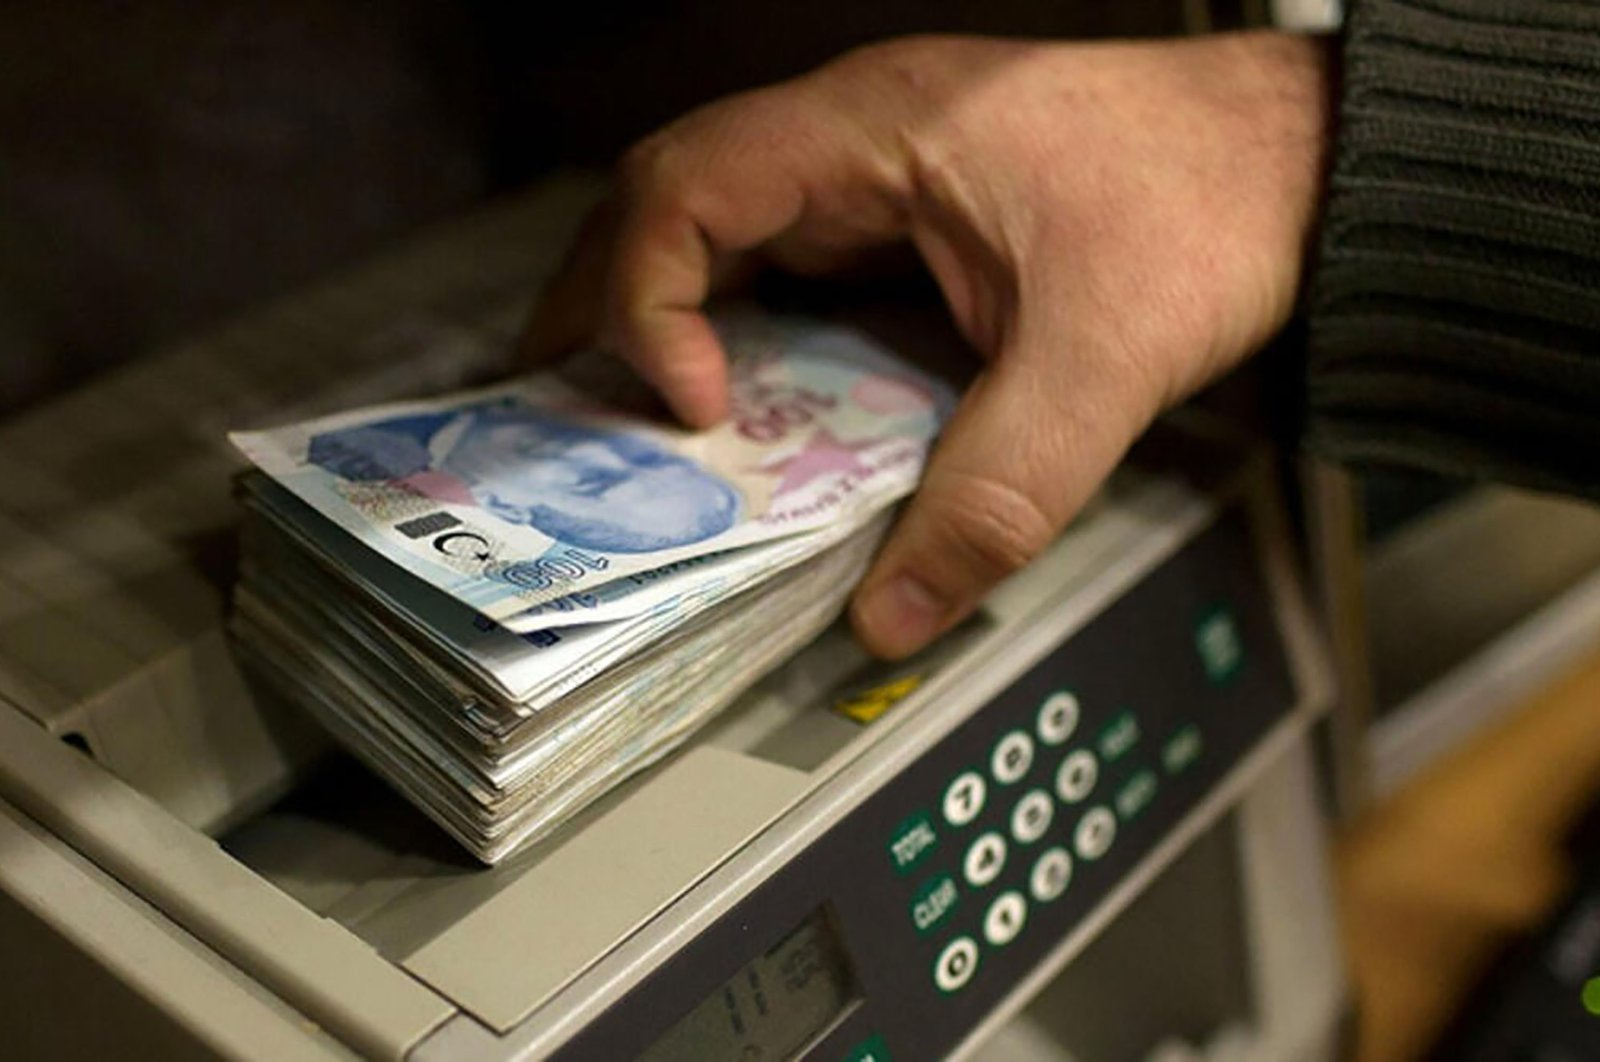 Turkey's short-term external debt stock amounted to $123.5 billion (TL 847 billion) as of the end of May. (File Photo)